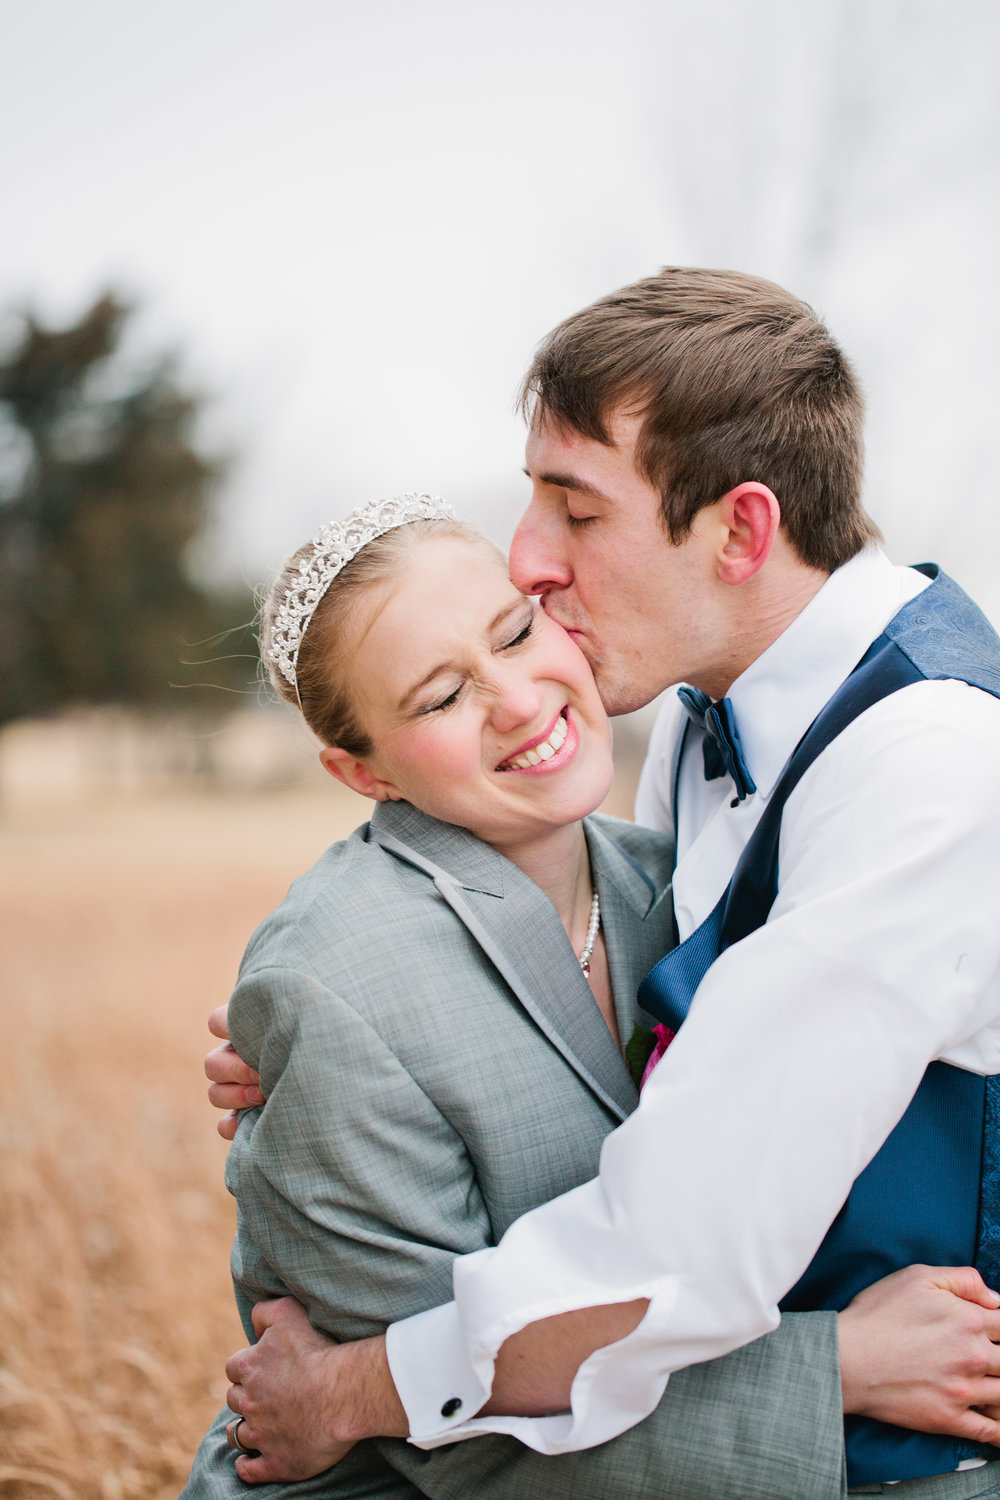 amelia is an affordable wedding videographer in Kansas City